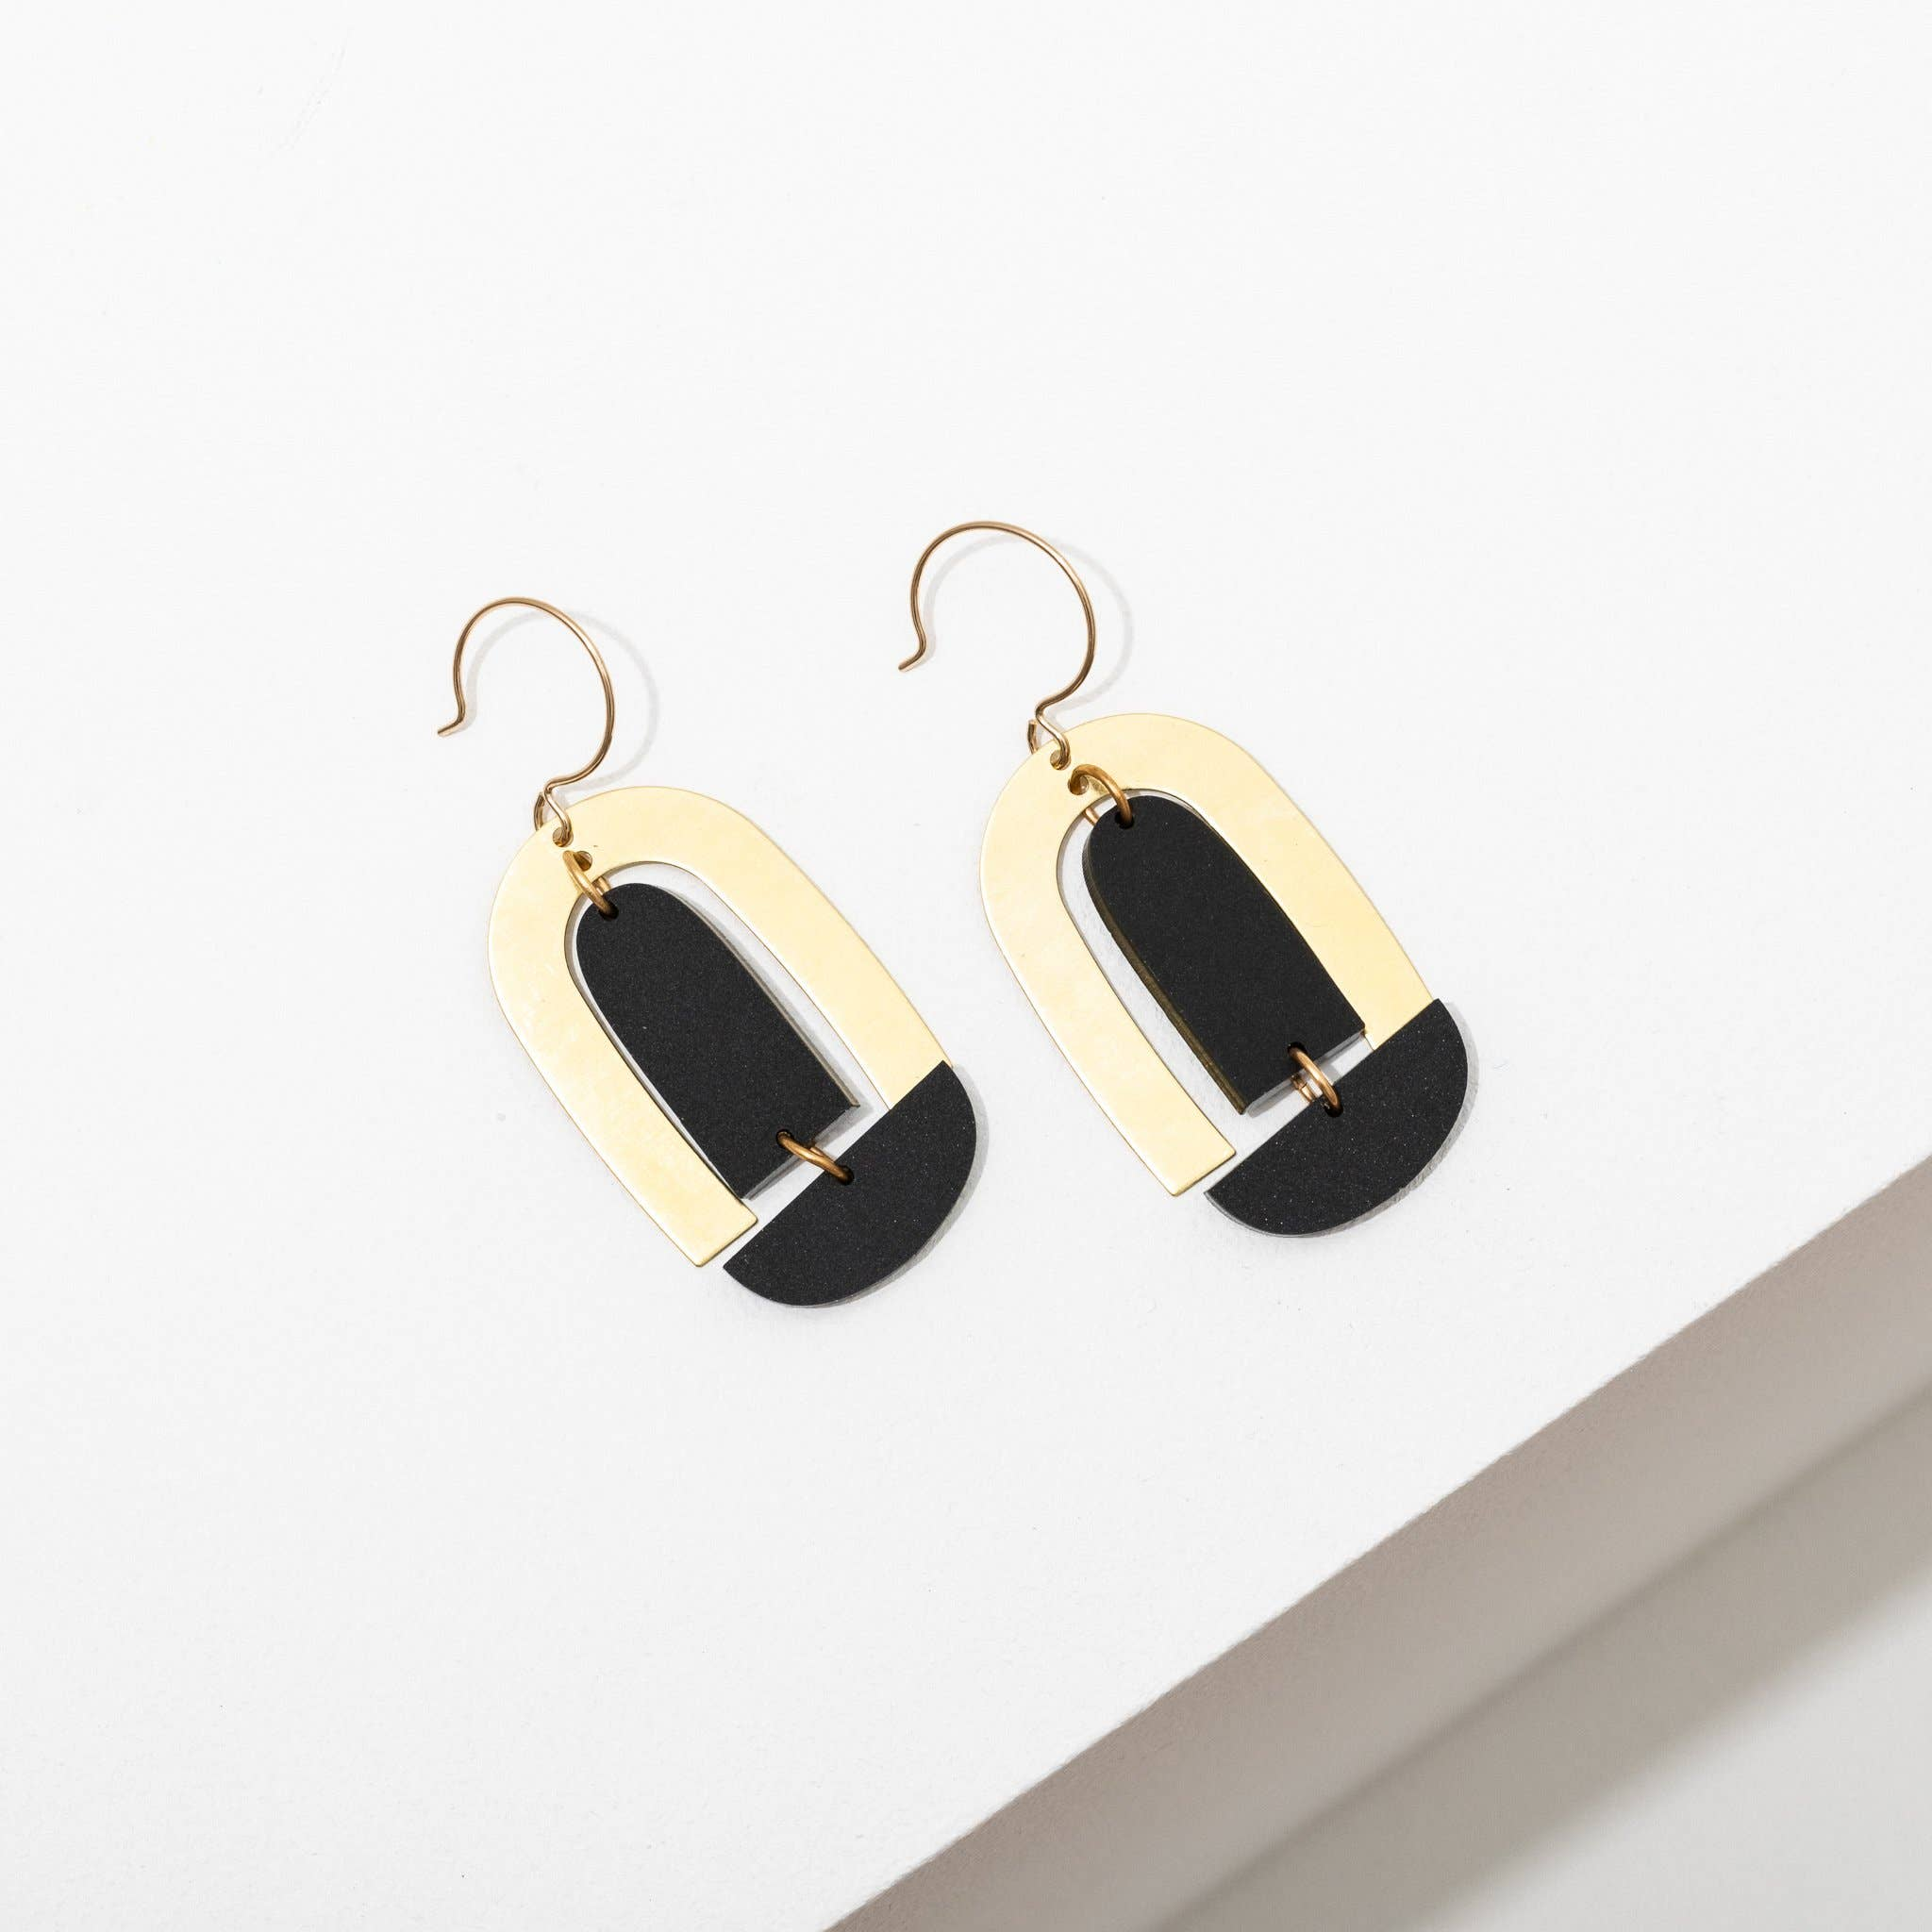 Tosi Earrings